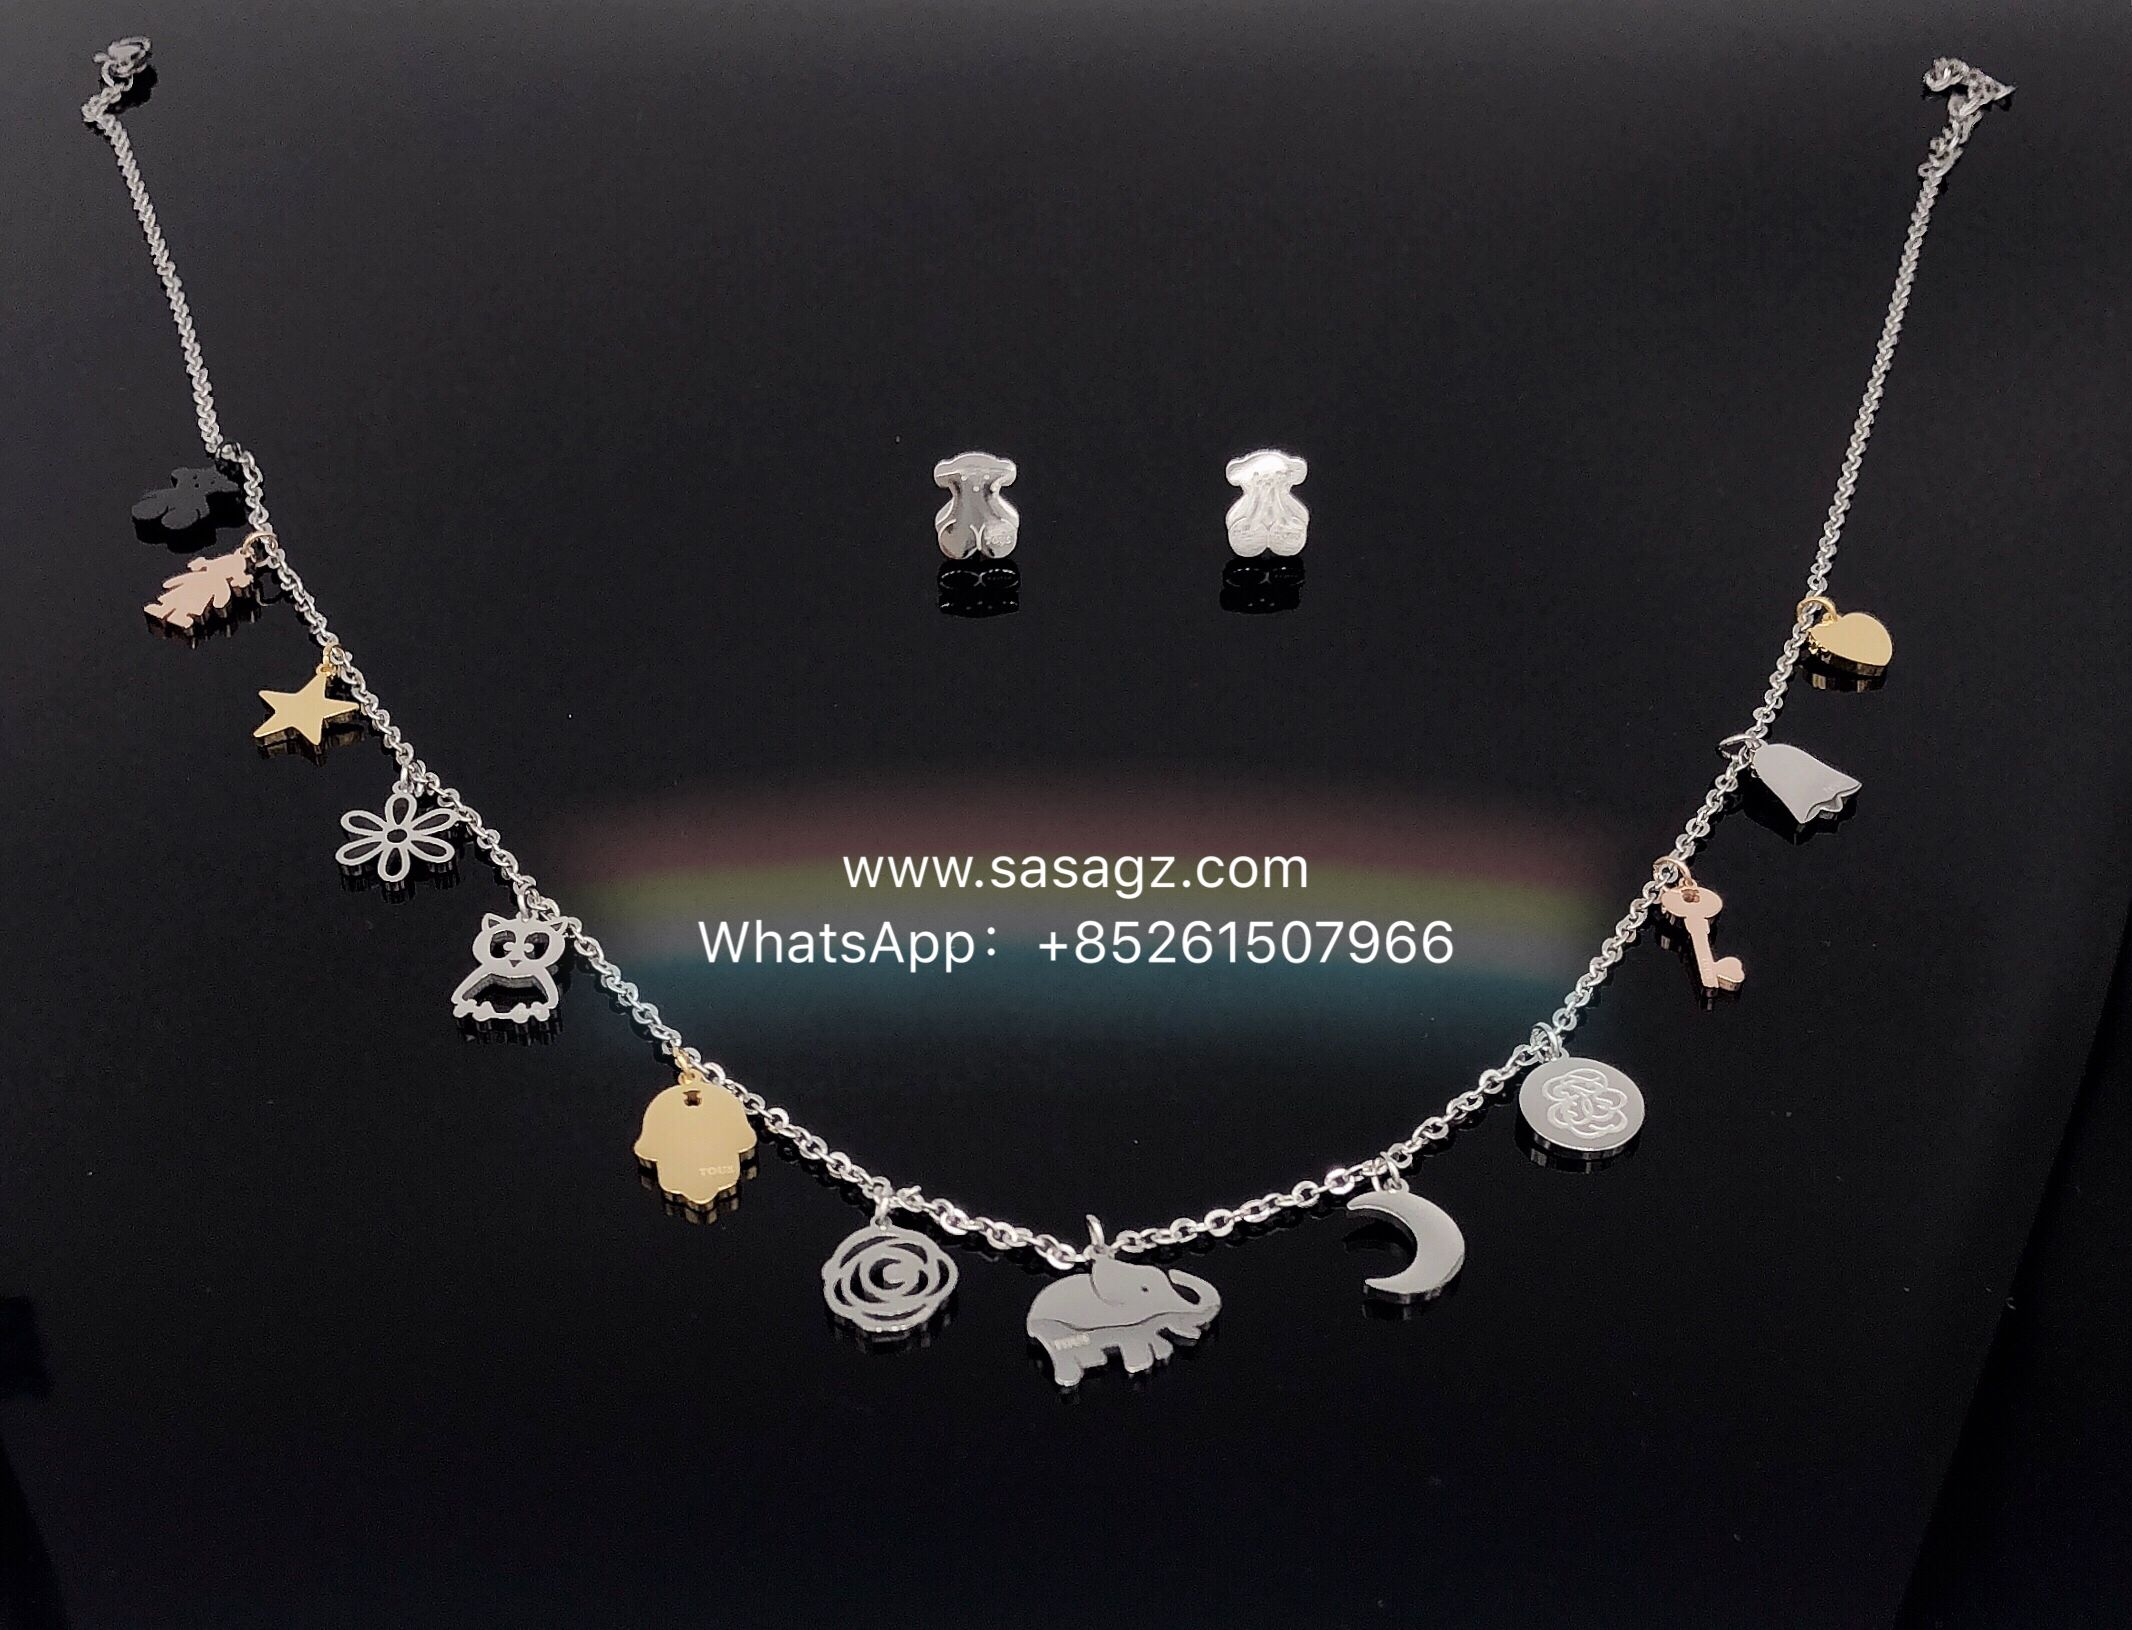 40+ Stainless steel tous jewelry wholesale ideas in 2021